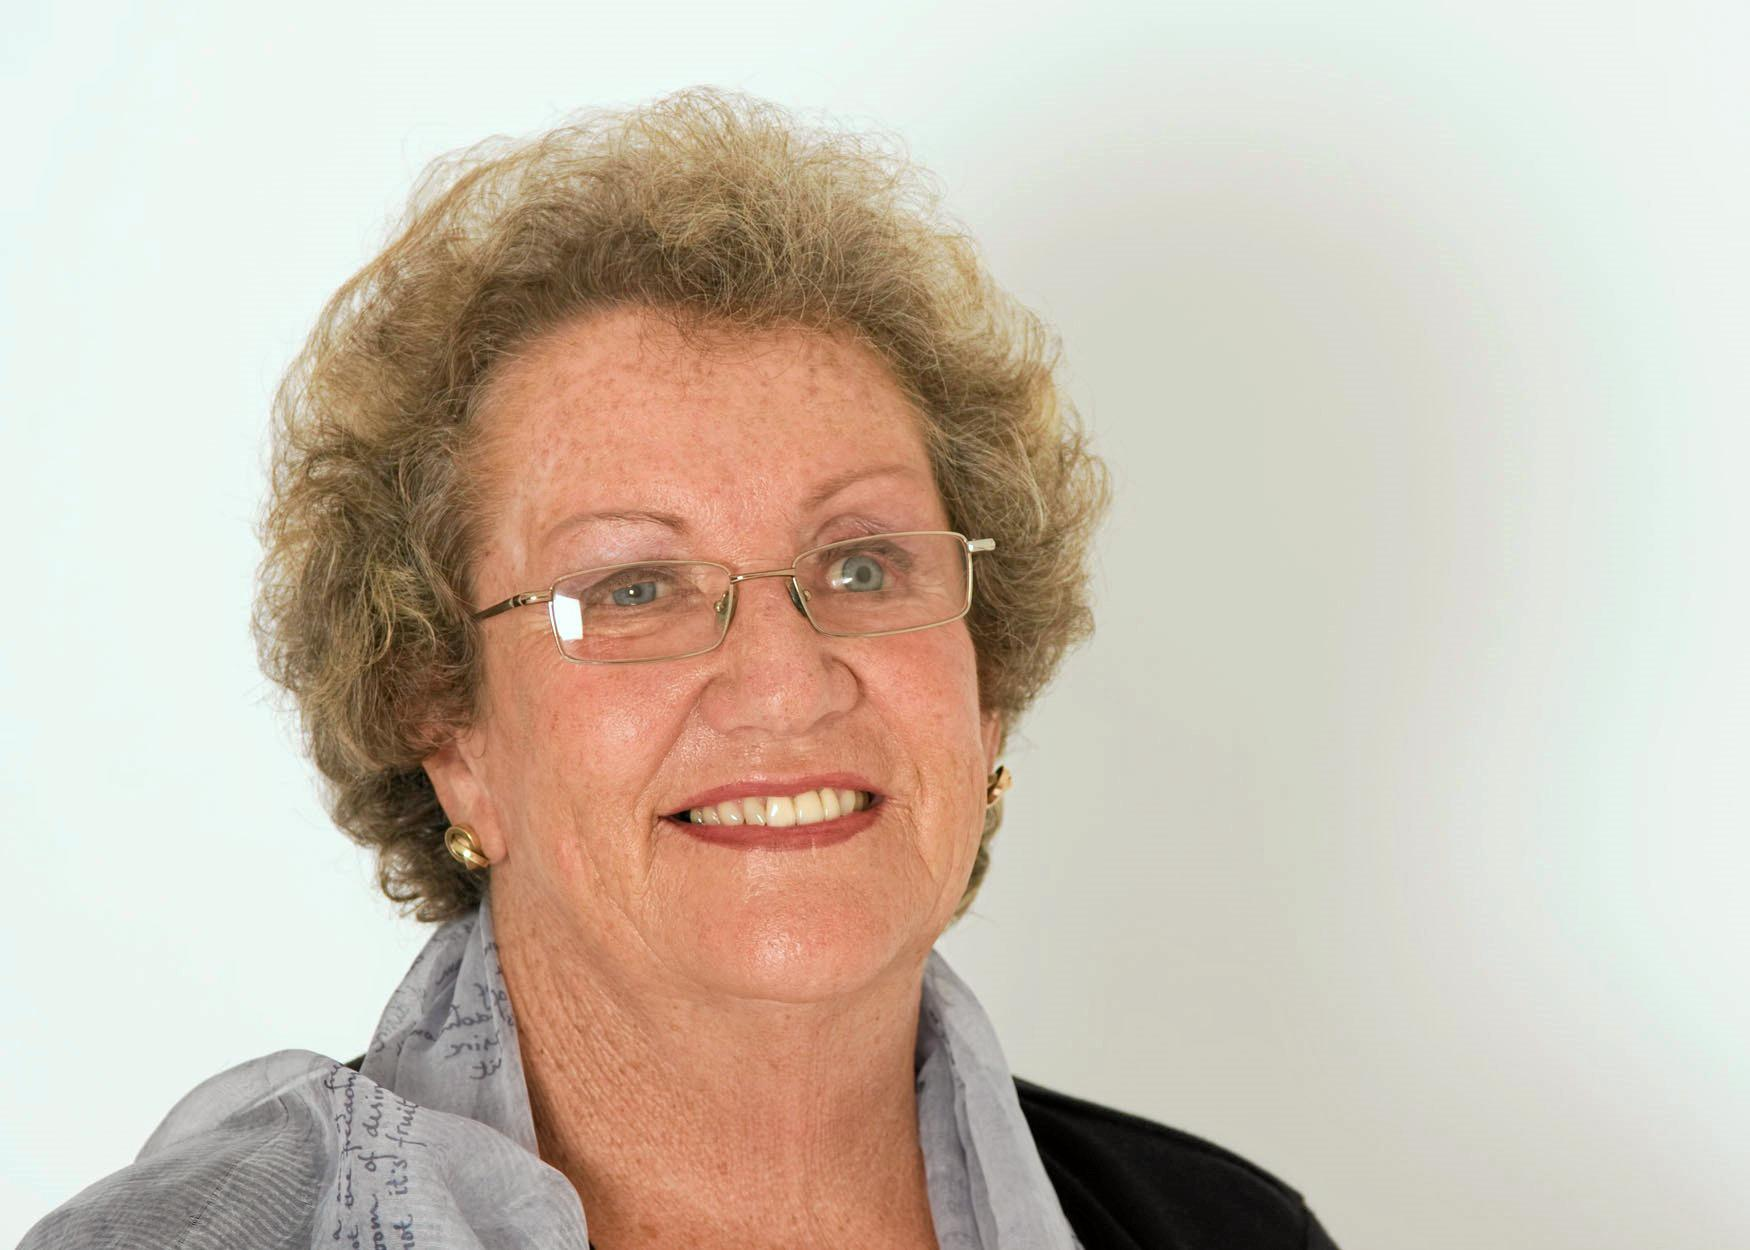 The next guest speaker for U3A Pine Rivers is Diane Carter, author of Dare to Live - Trust Yourself.